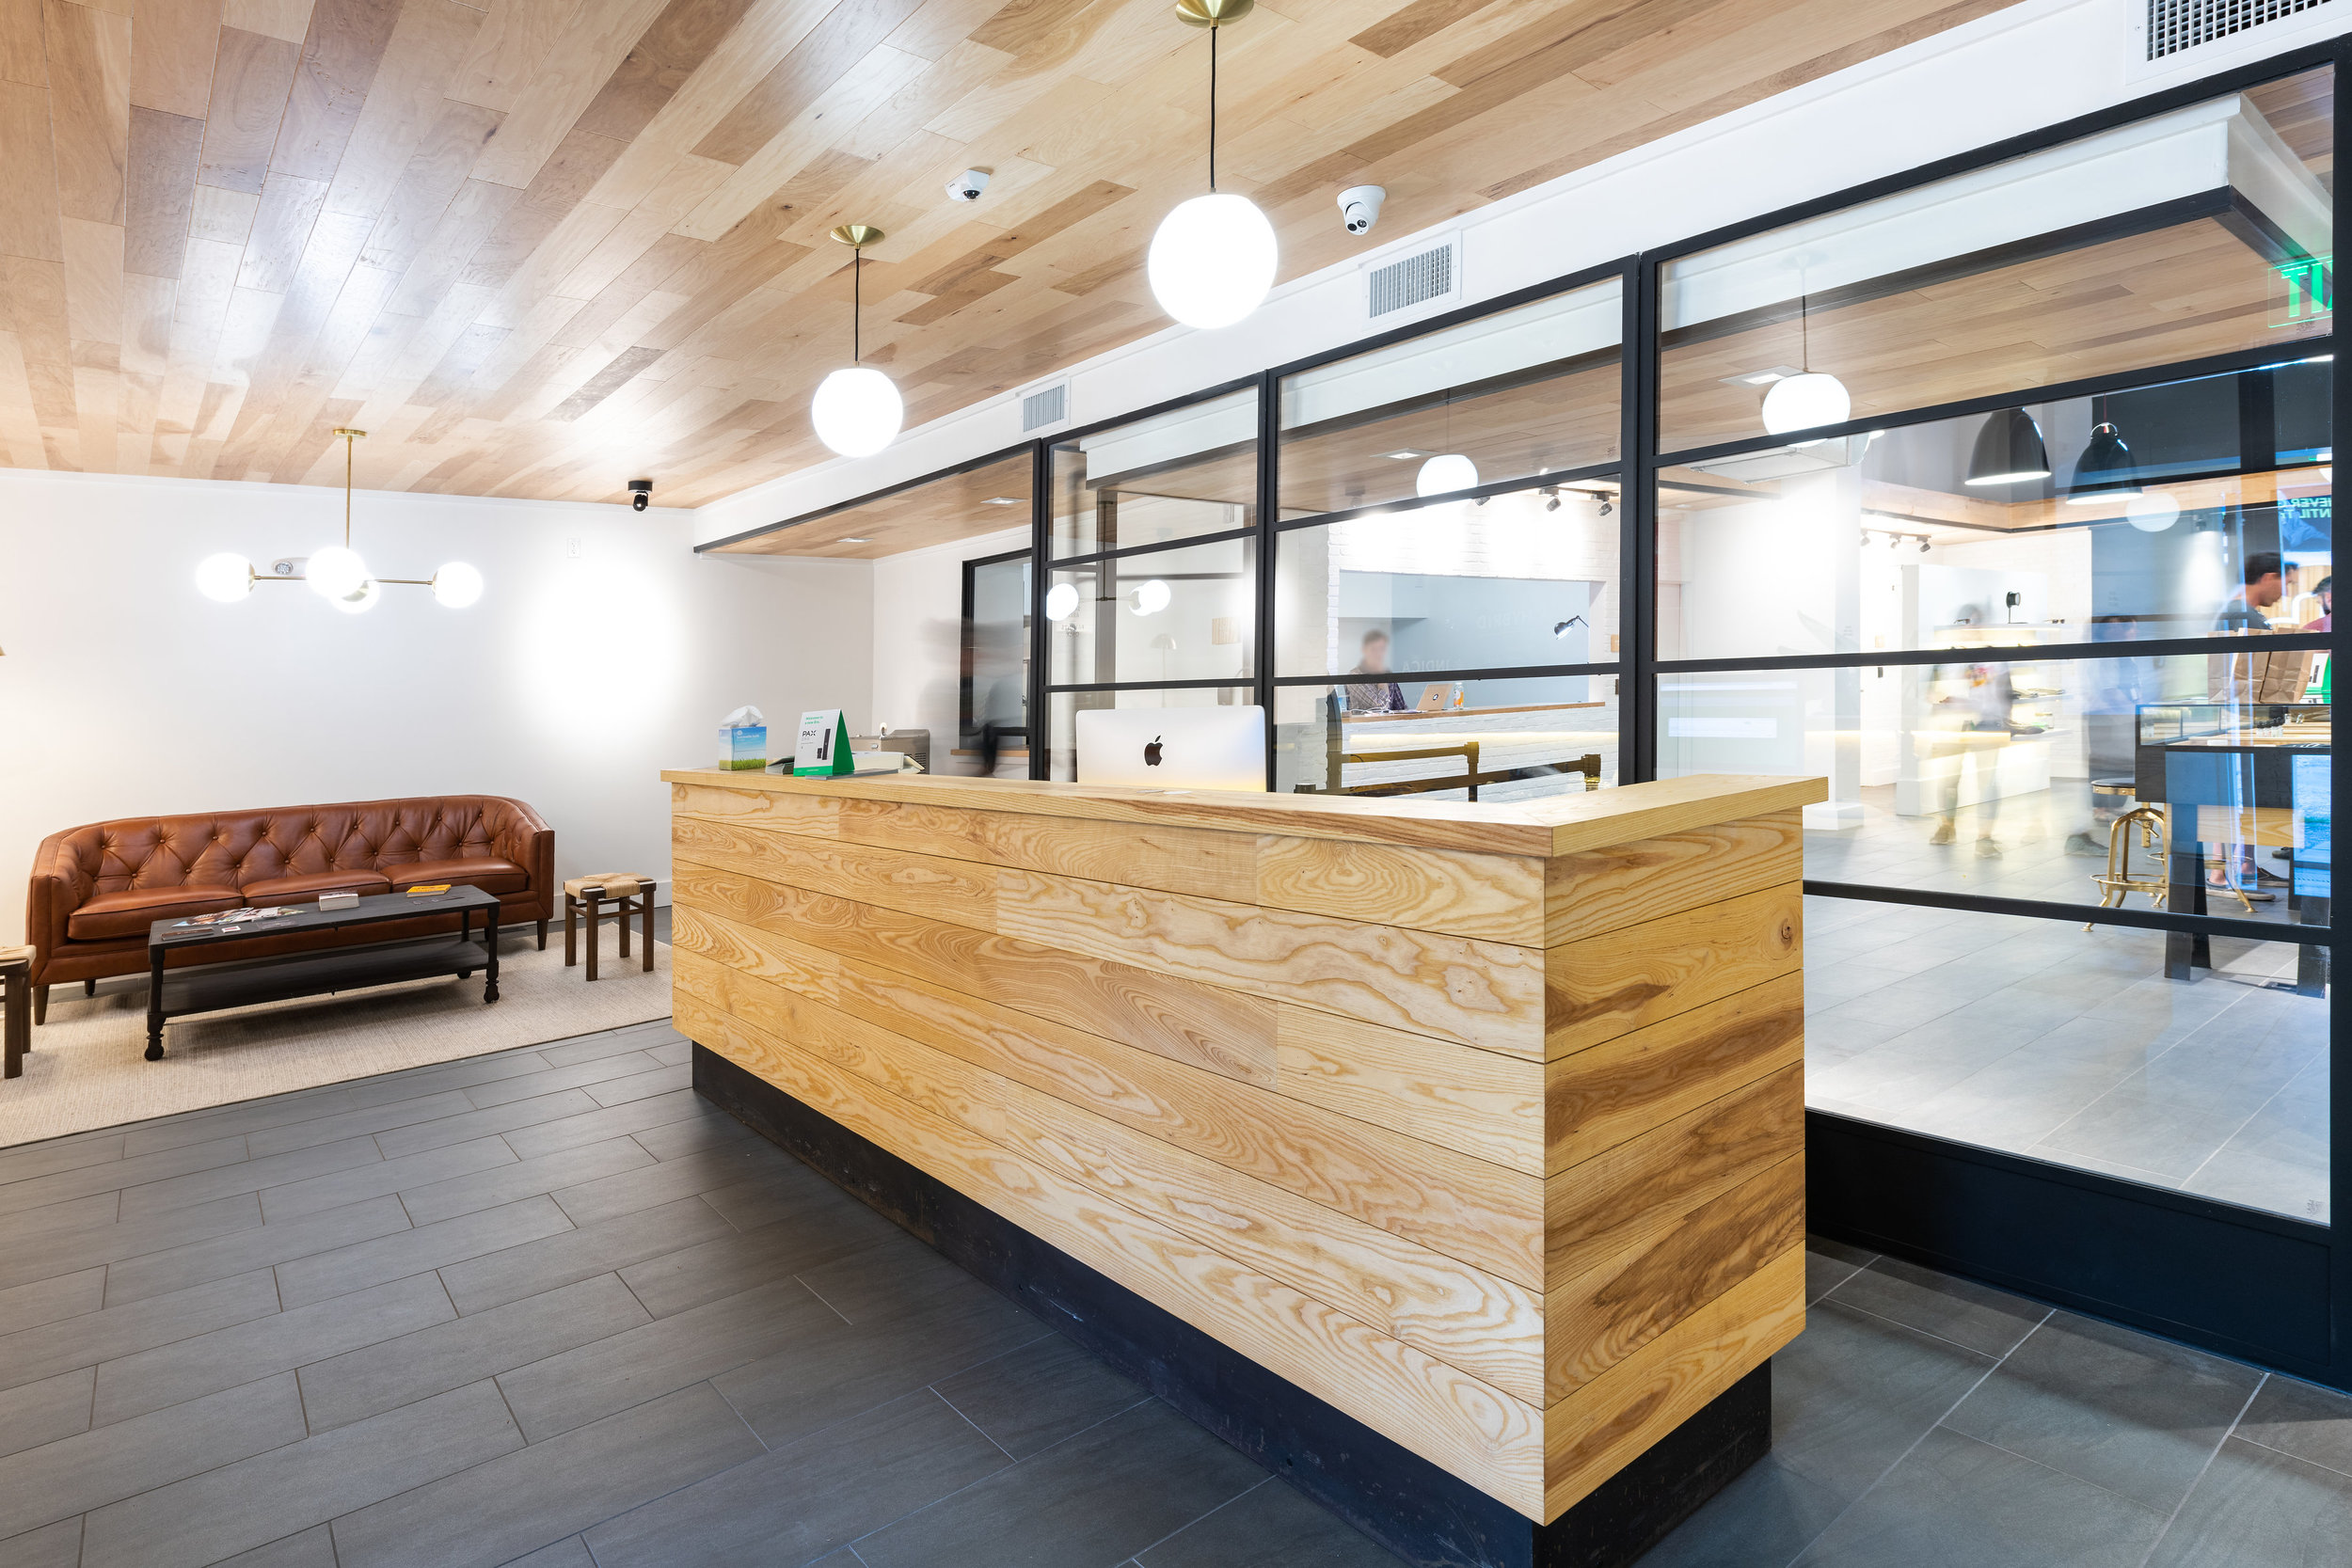 Ash reception desk for Storehouse Dispensary in Baltimore, MD. Designed by SM+P Architects